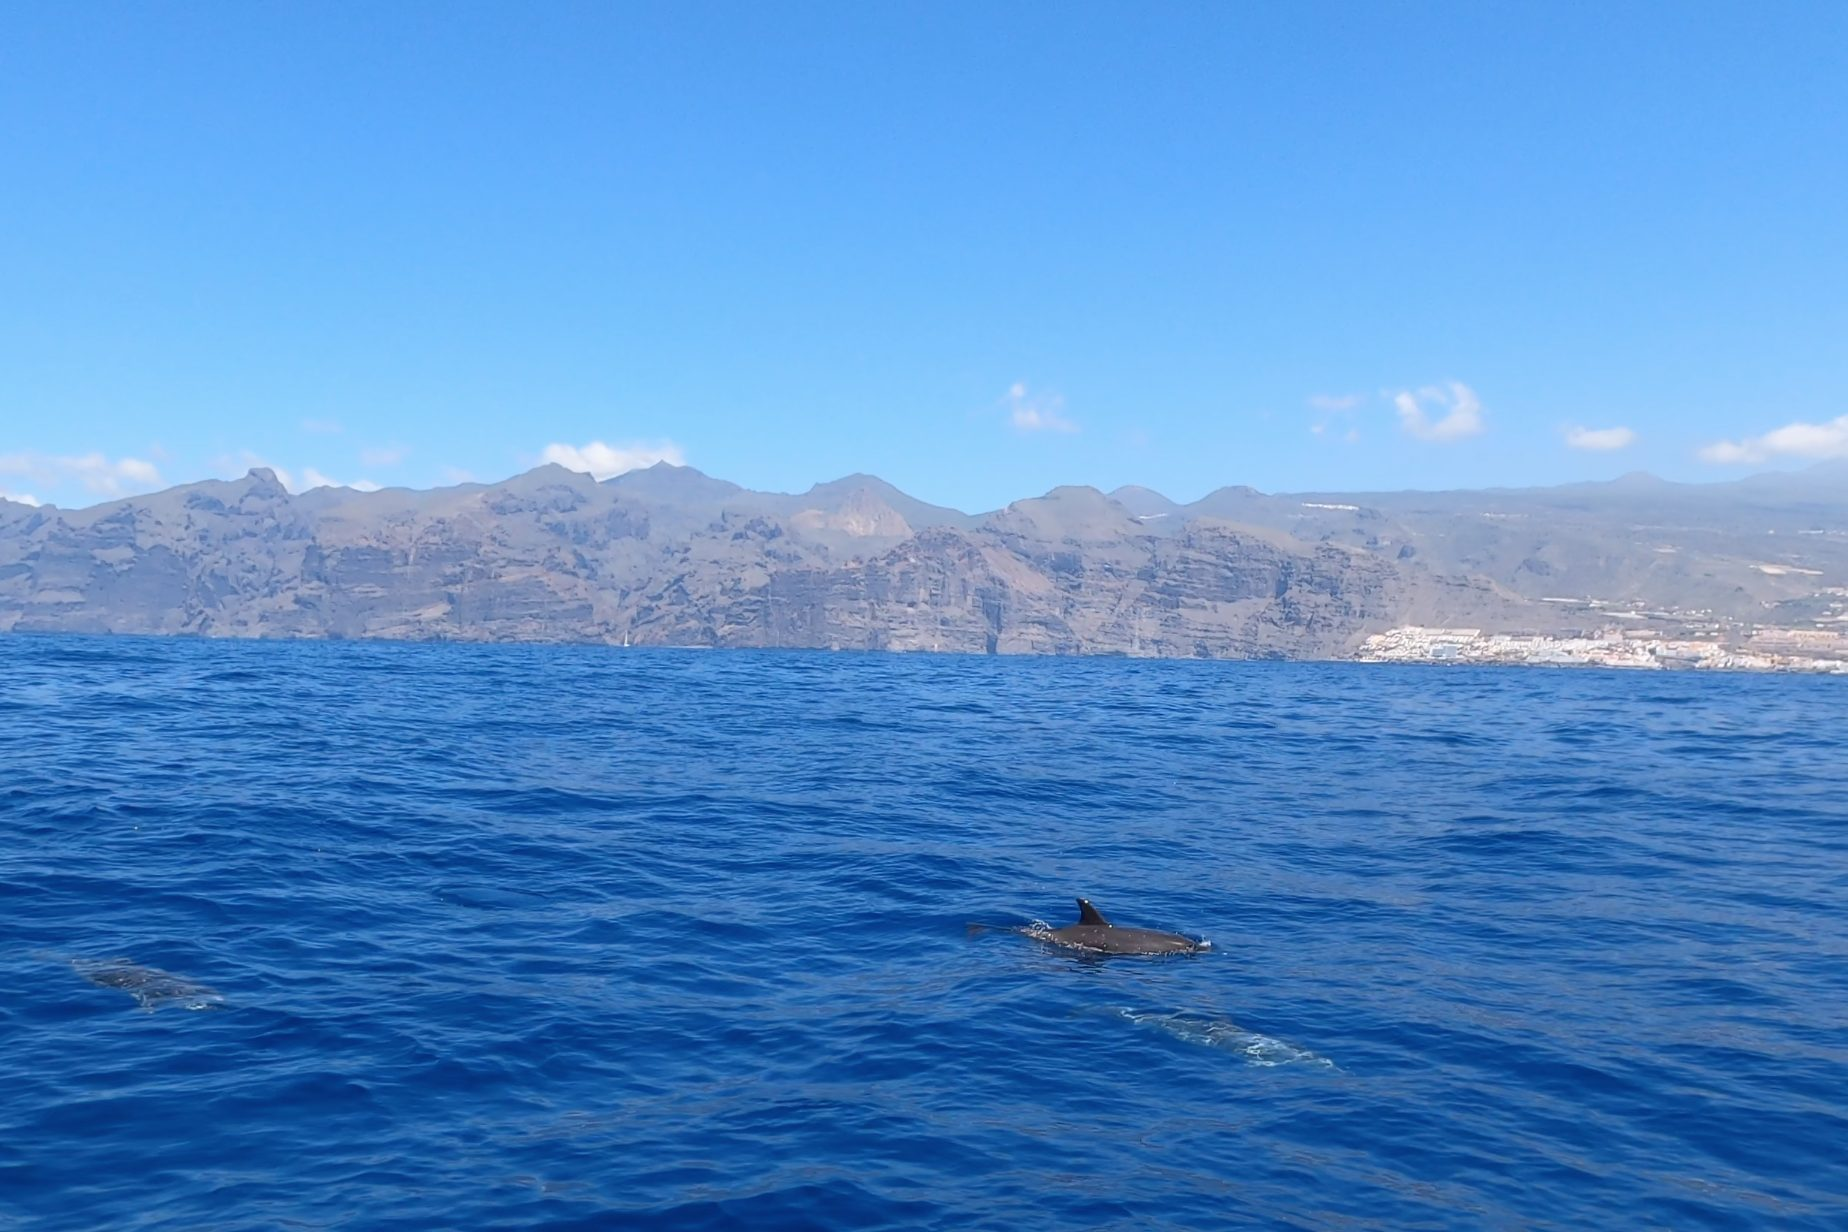 Los Gigantes Whale Watching